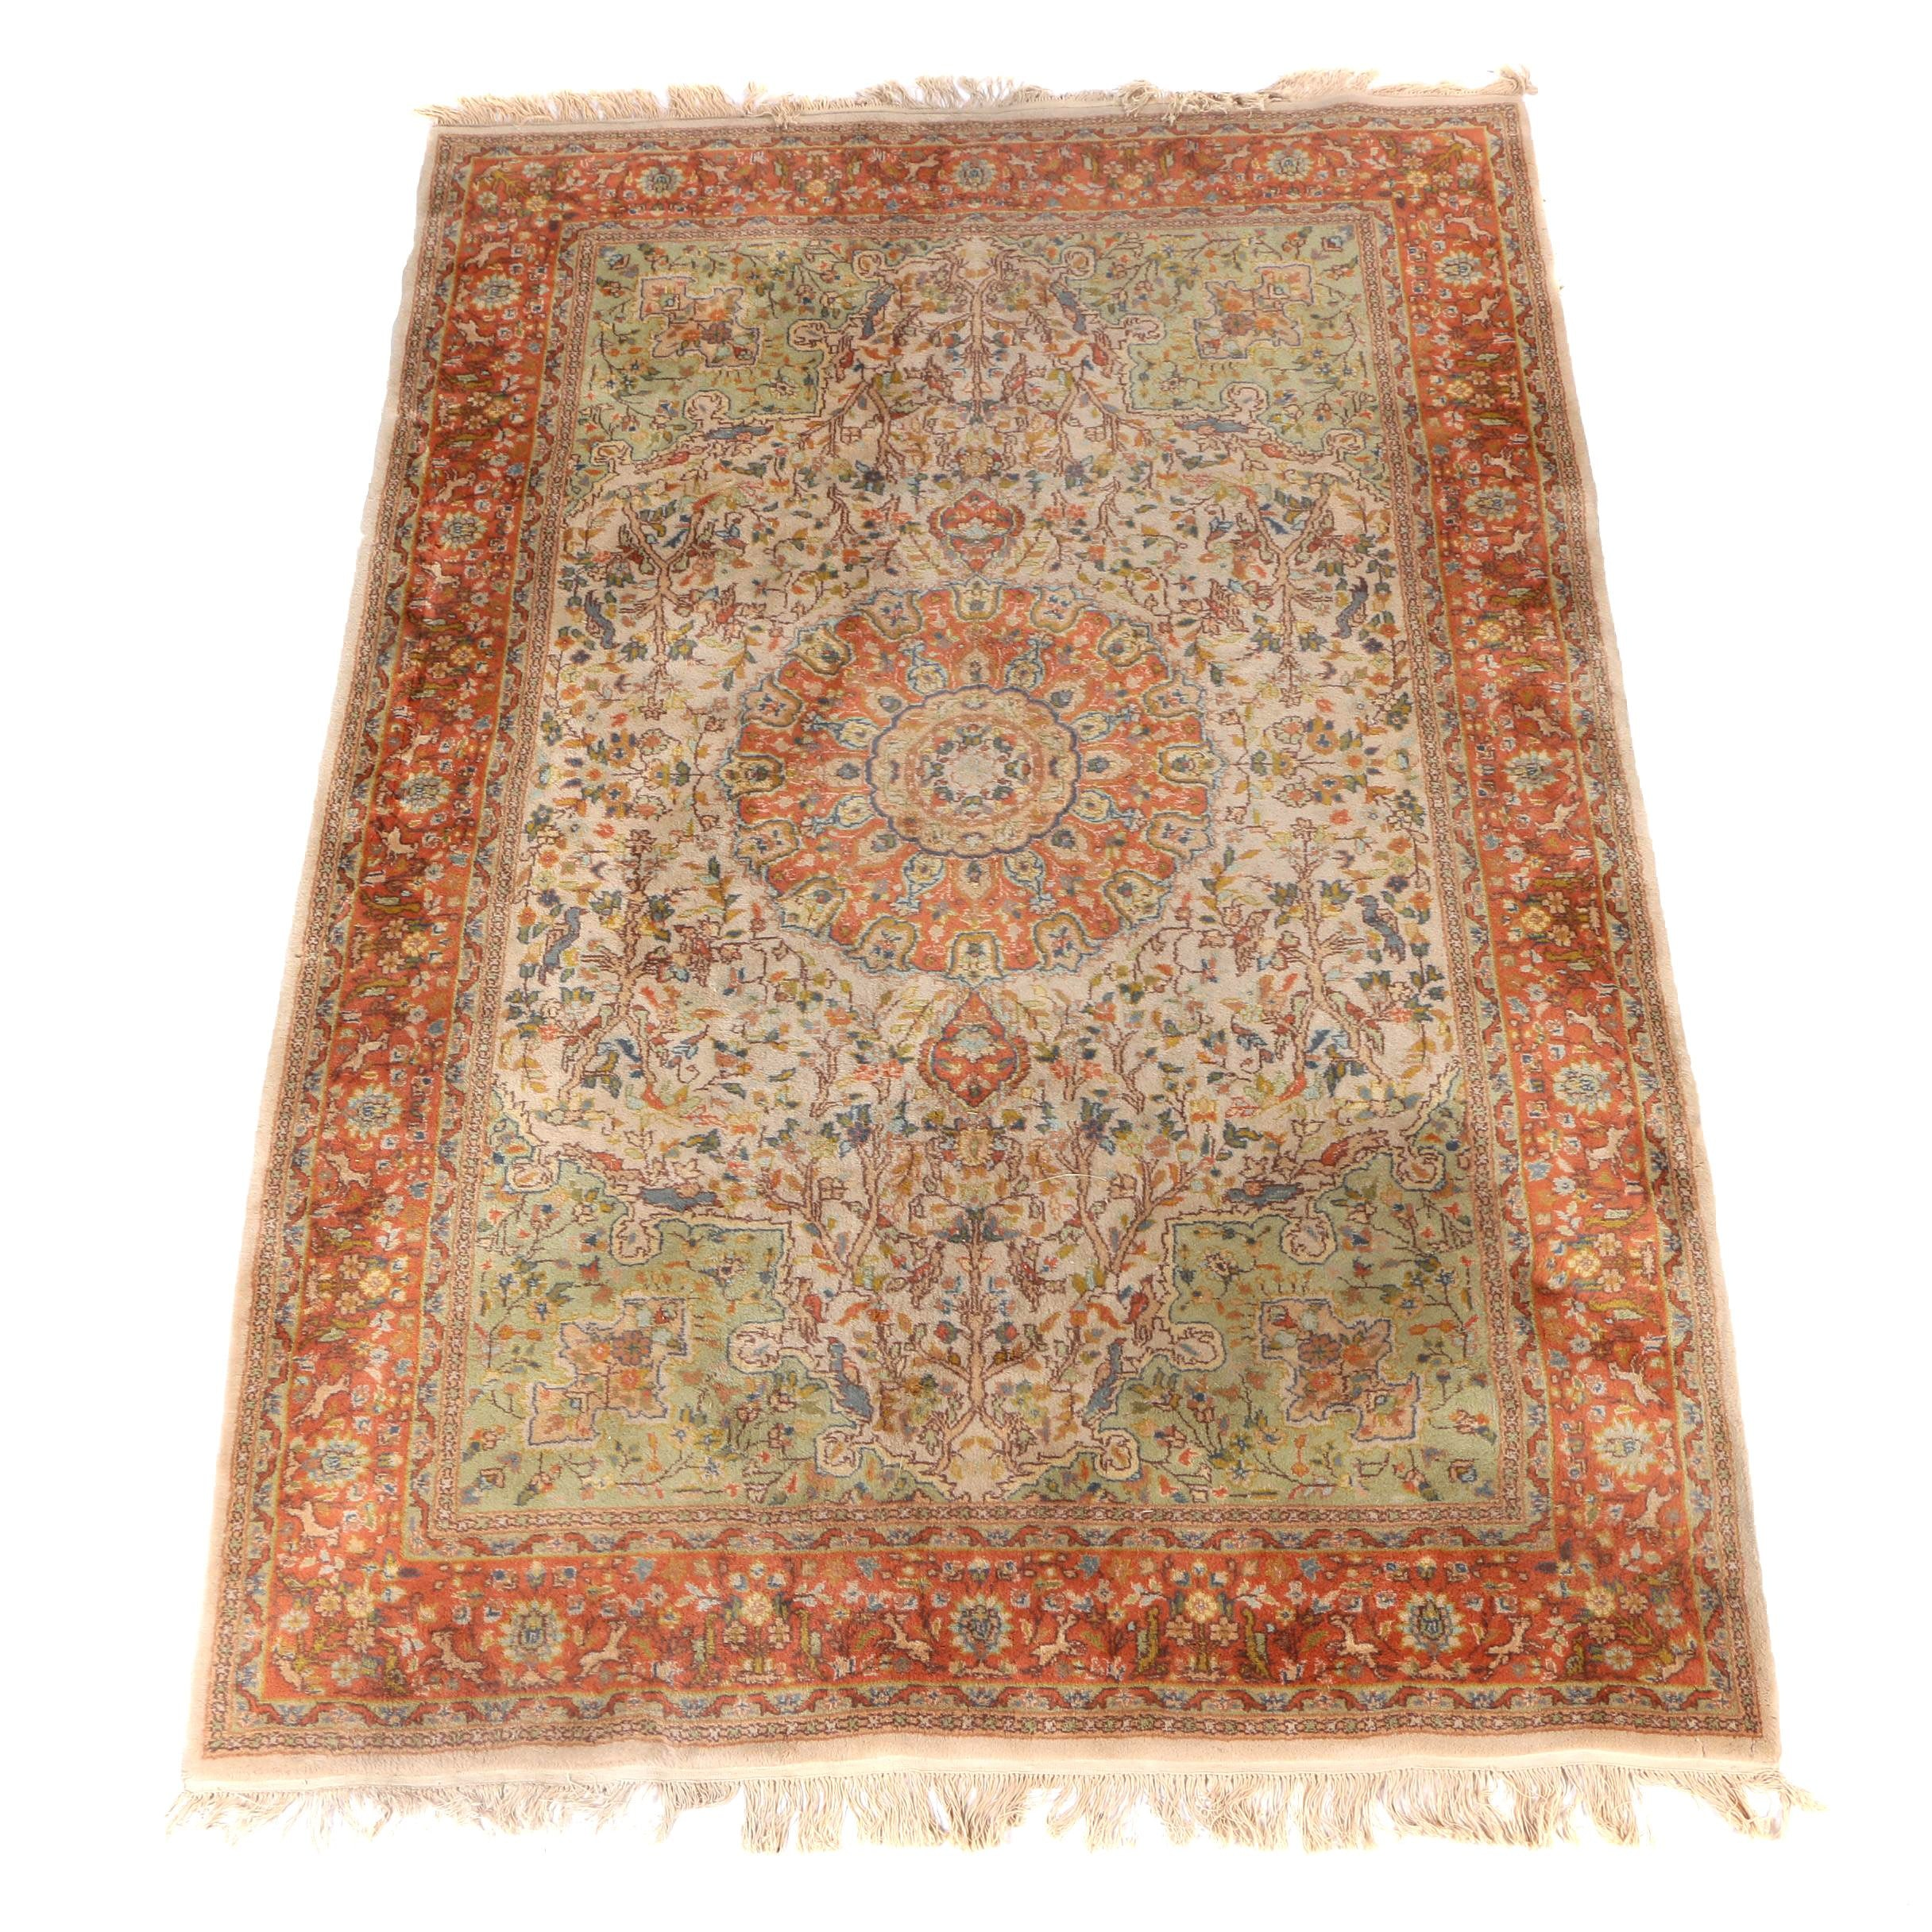 Hand-Knotted Indian Royal Jahan Tabriz-Style Pictorial Wool Area Rug